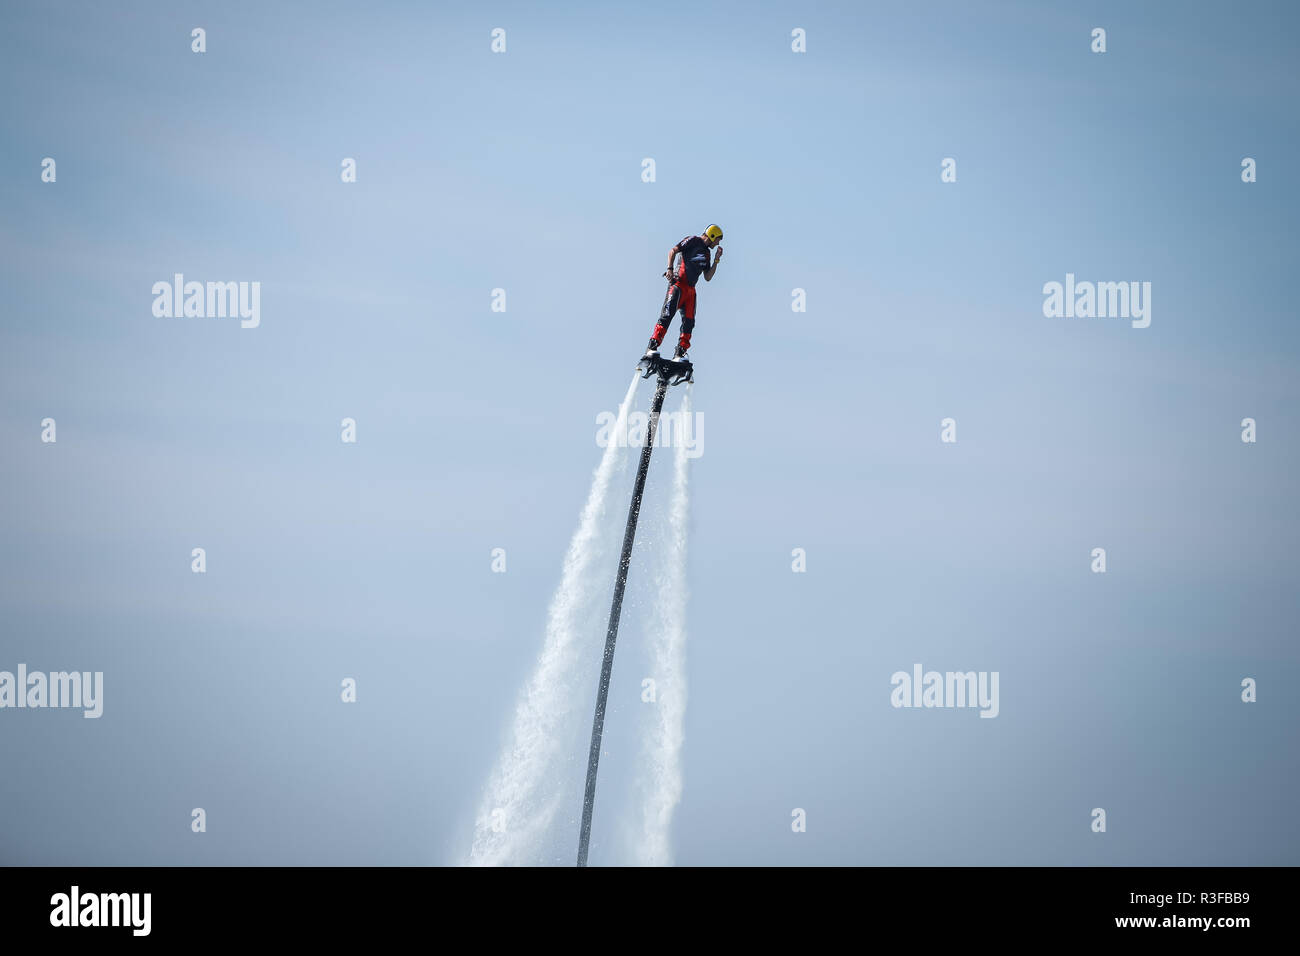 Dugi Rat, Croatia - October 20, 2018: A man is doing acrobatics with flyboard attached to jet ski close to the shore in Dugi Rat, Croatia. - Stock Image